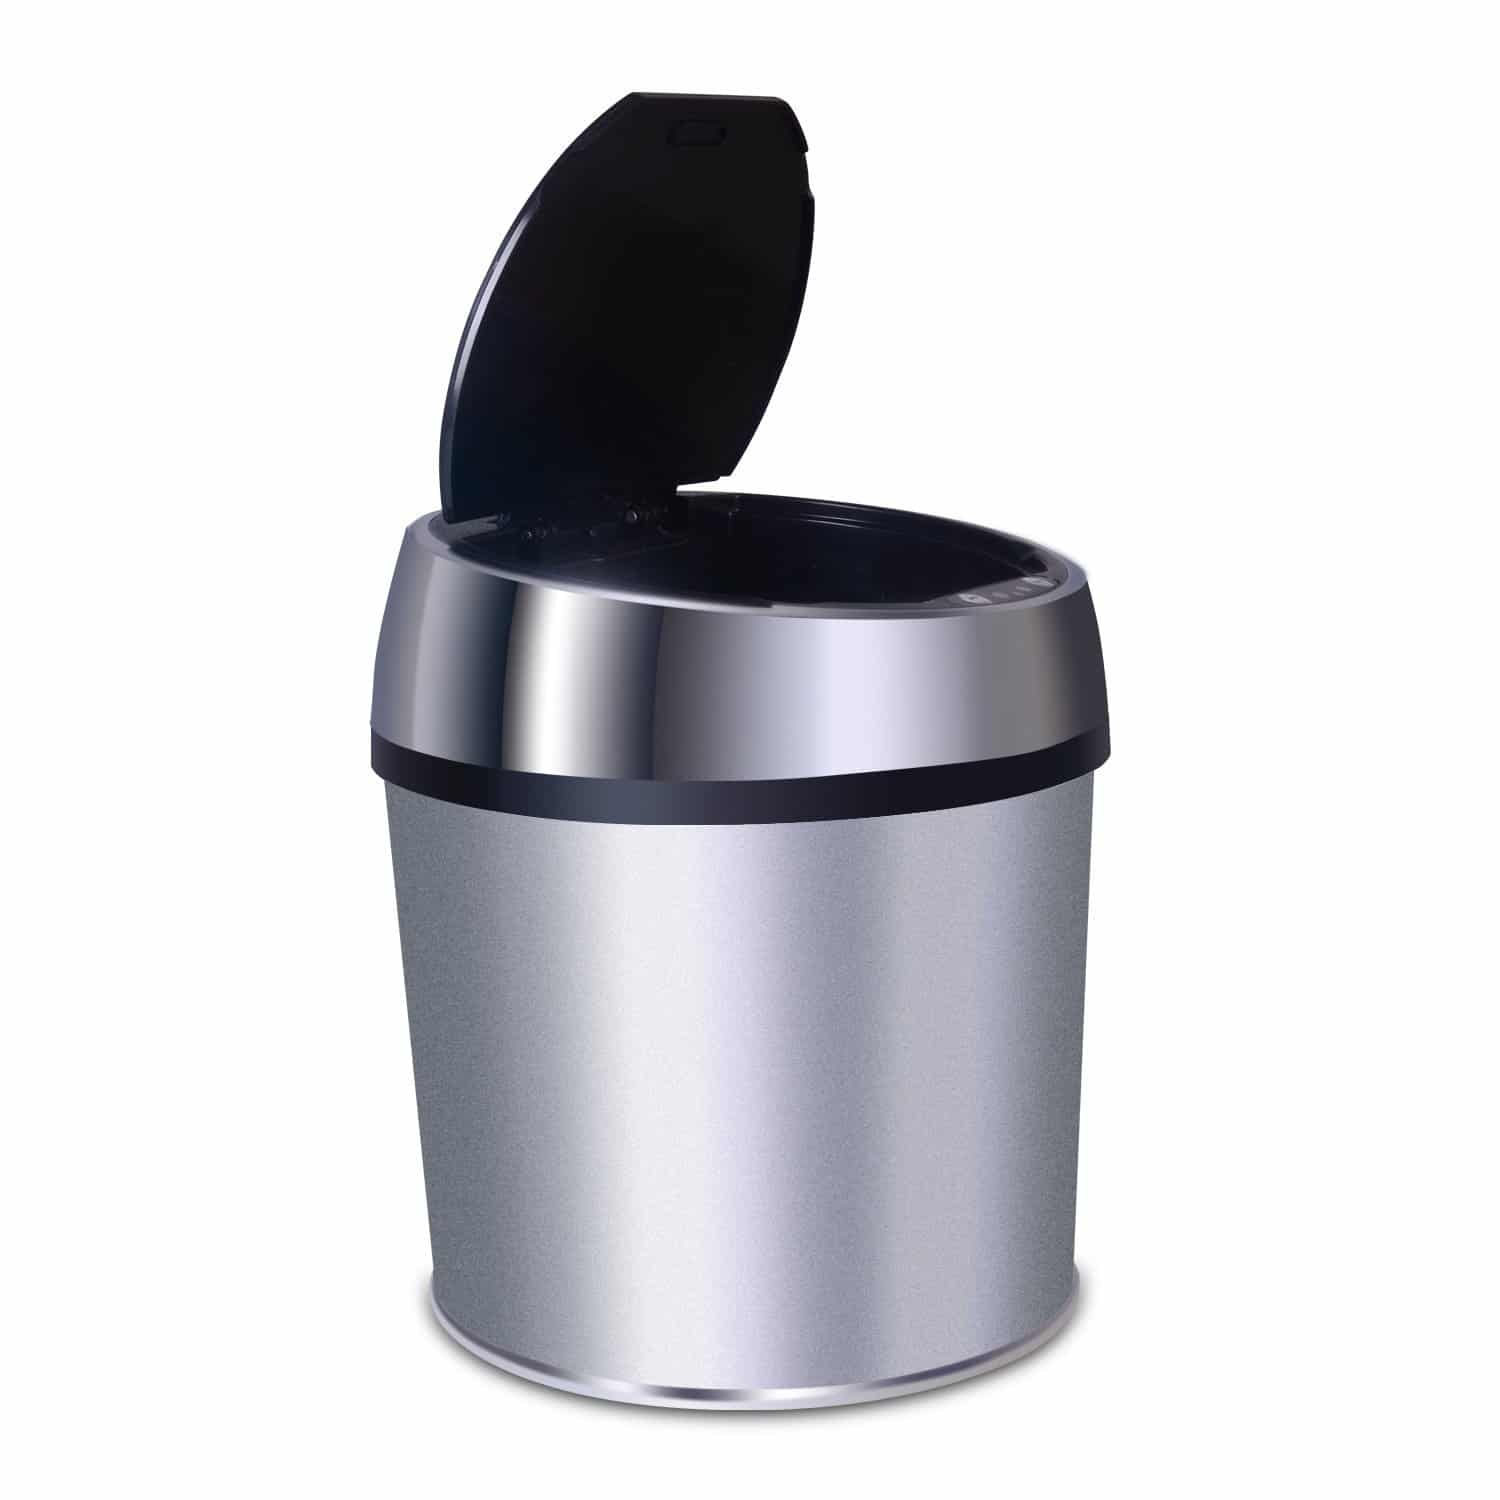 Top 10 Best Office Dustbins in 2019 Reviews